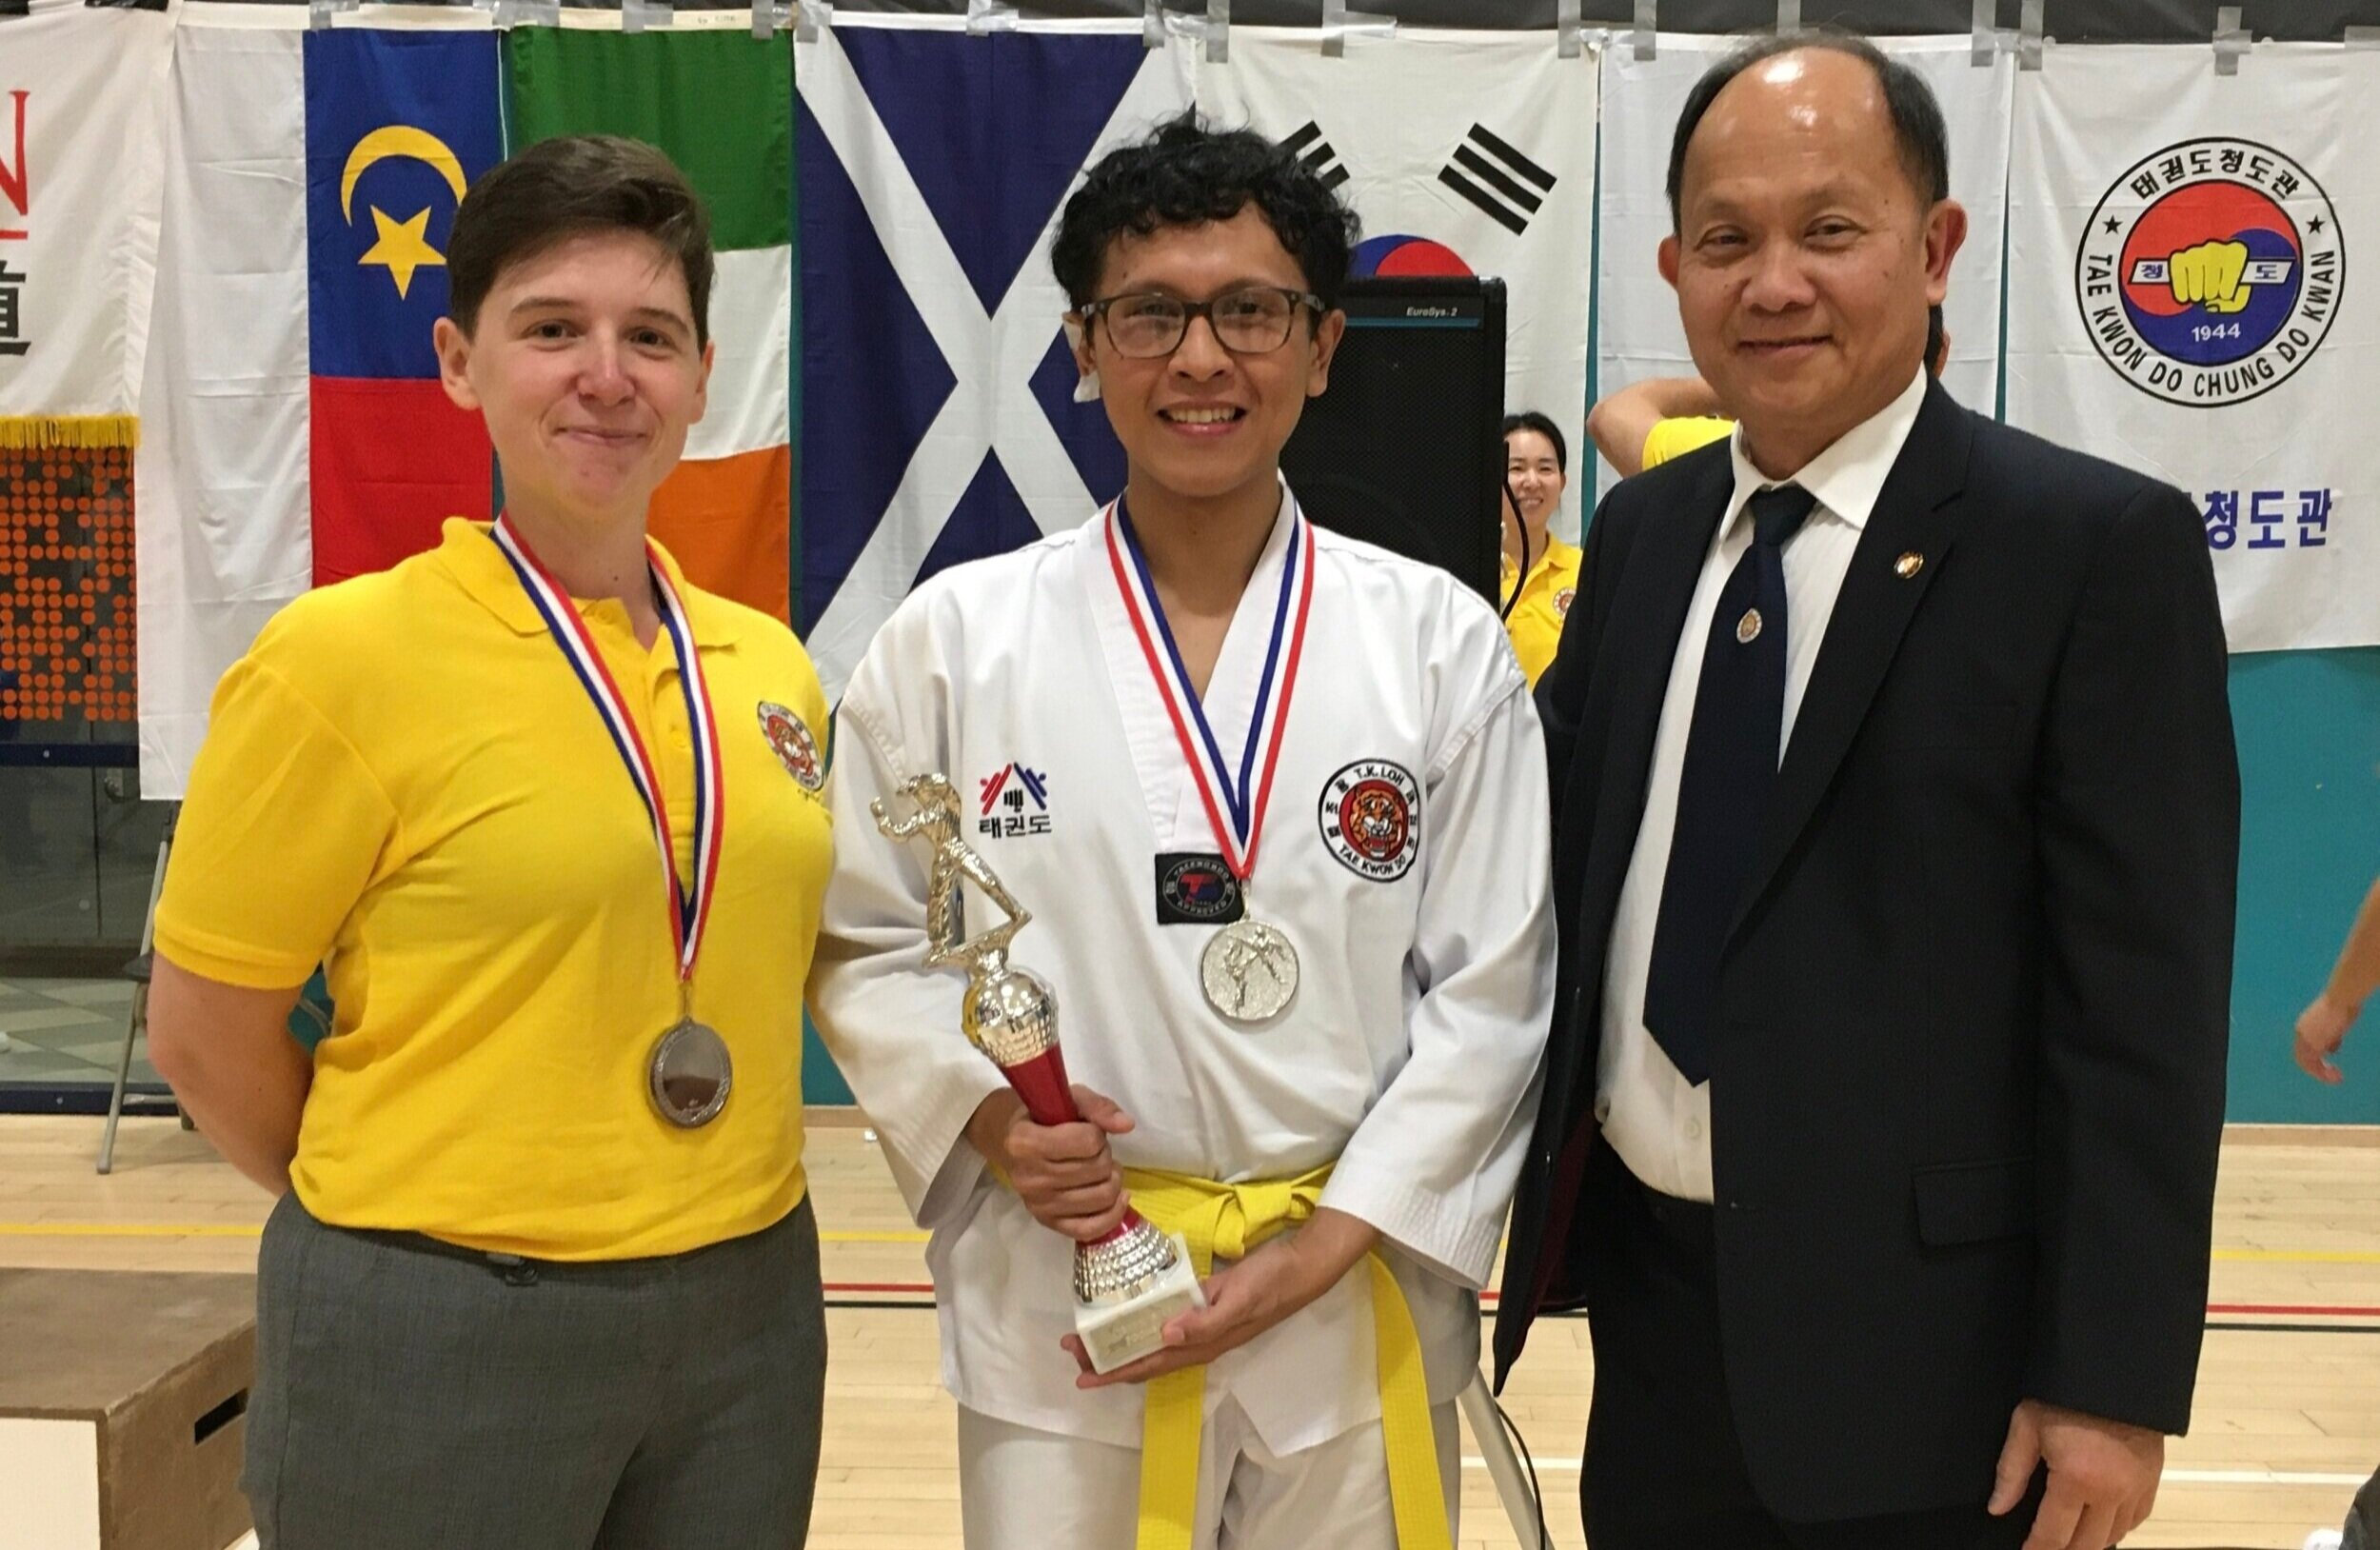 London Peckham, entering for the first time, won silver in kyorugi and gold and silver for poomsae.